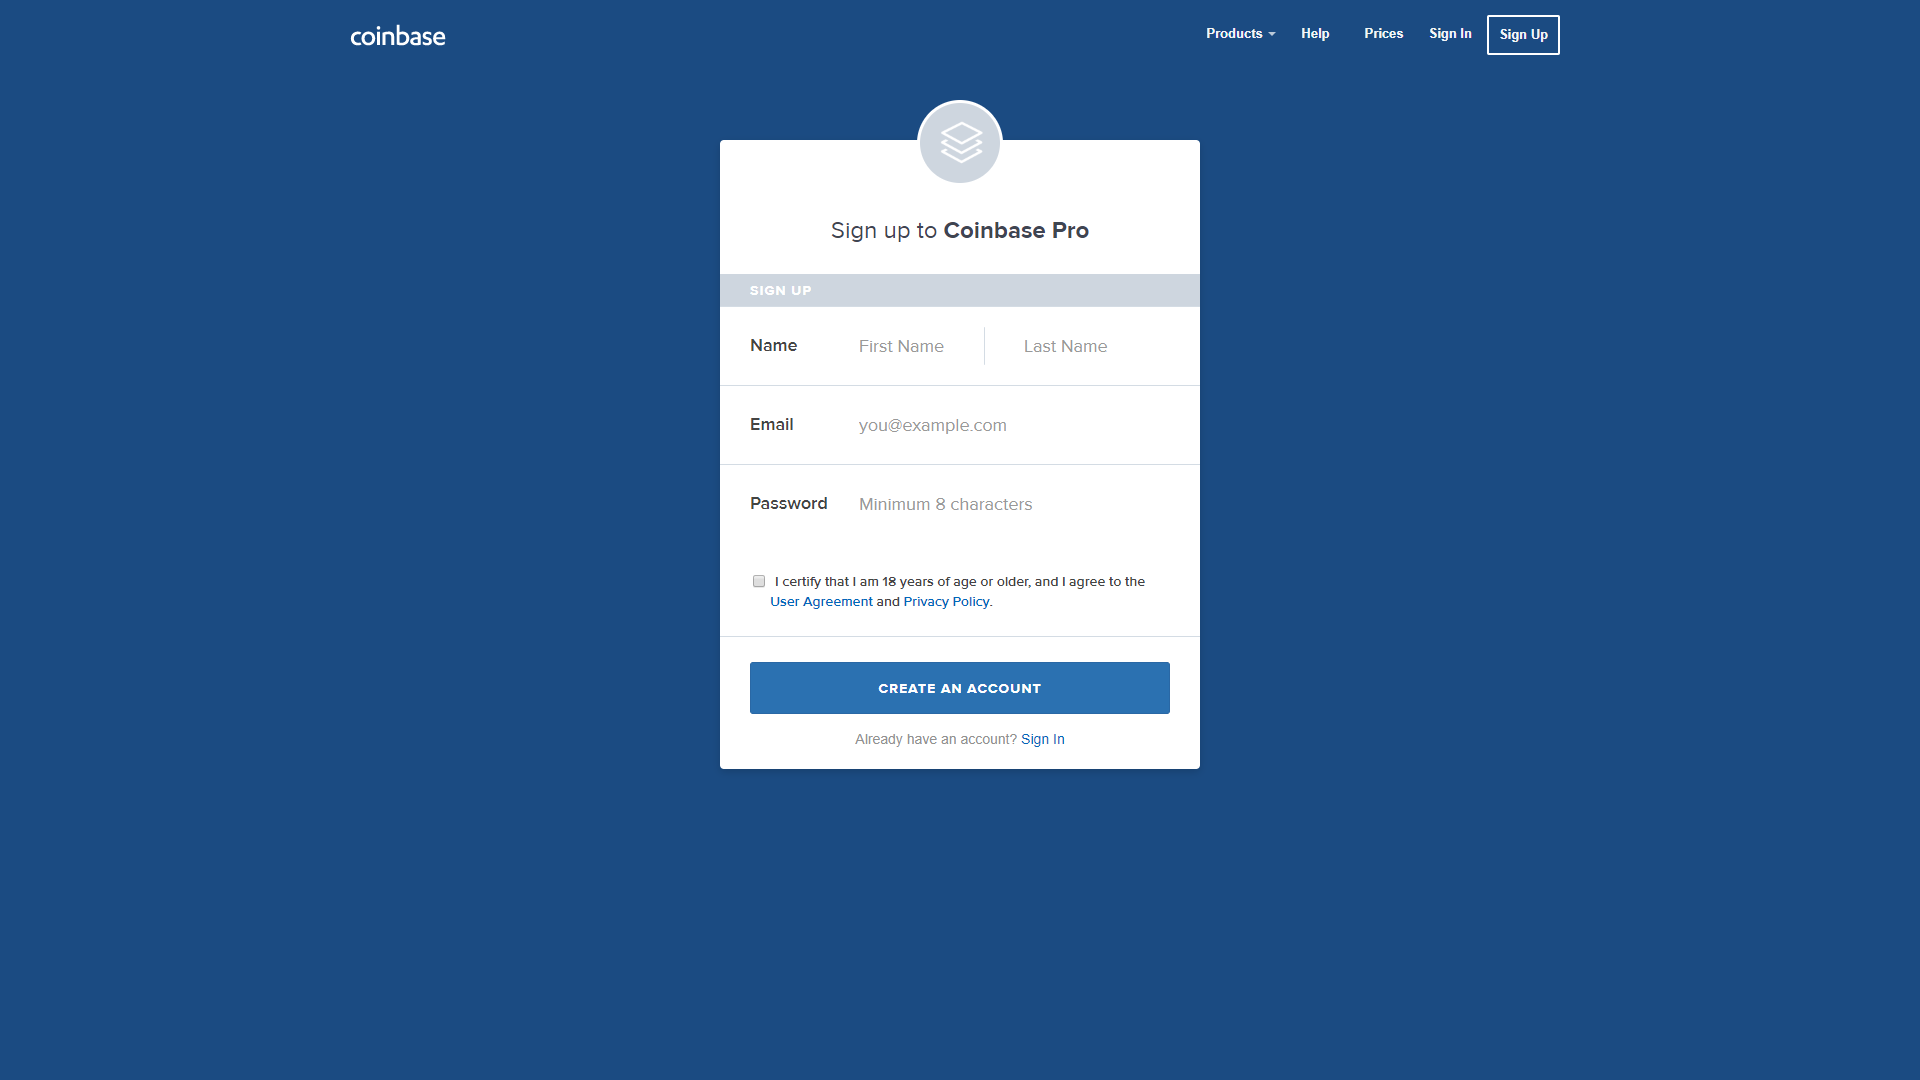 coinbase login issues